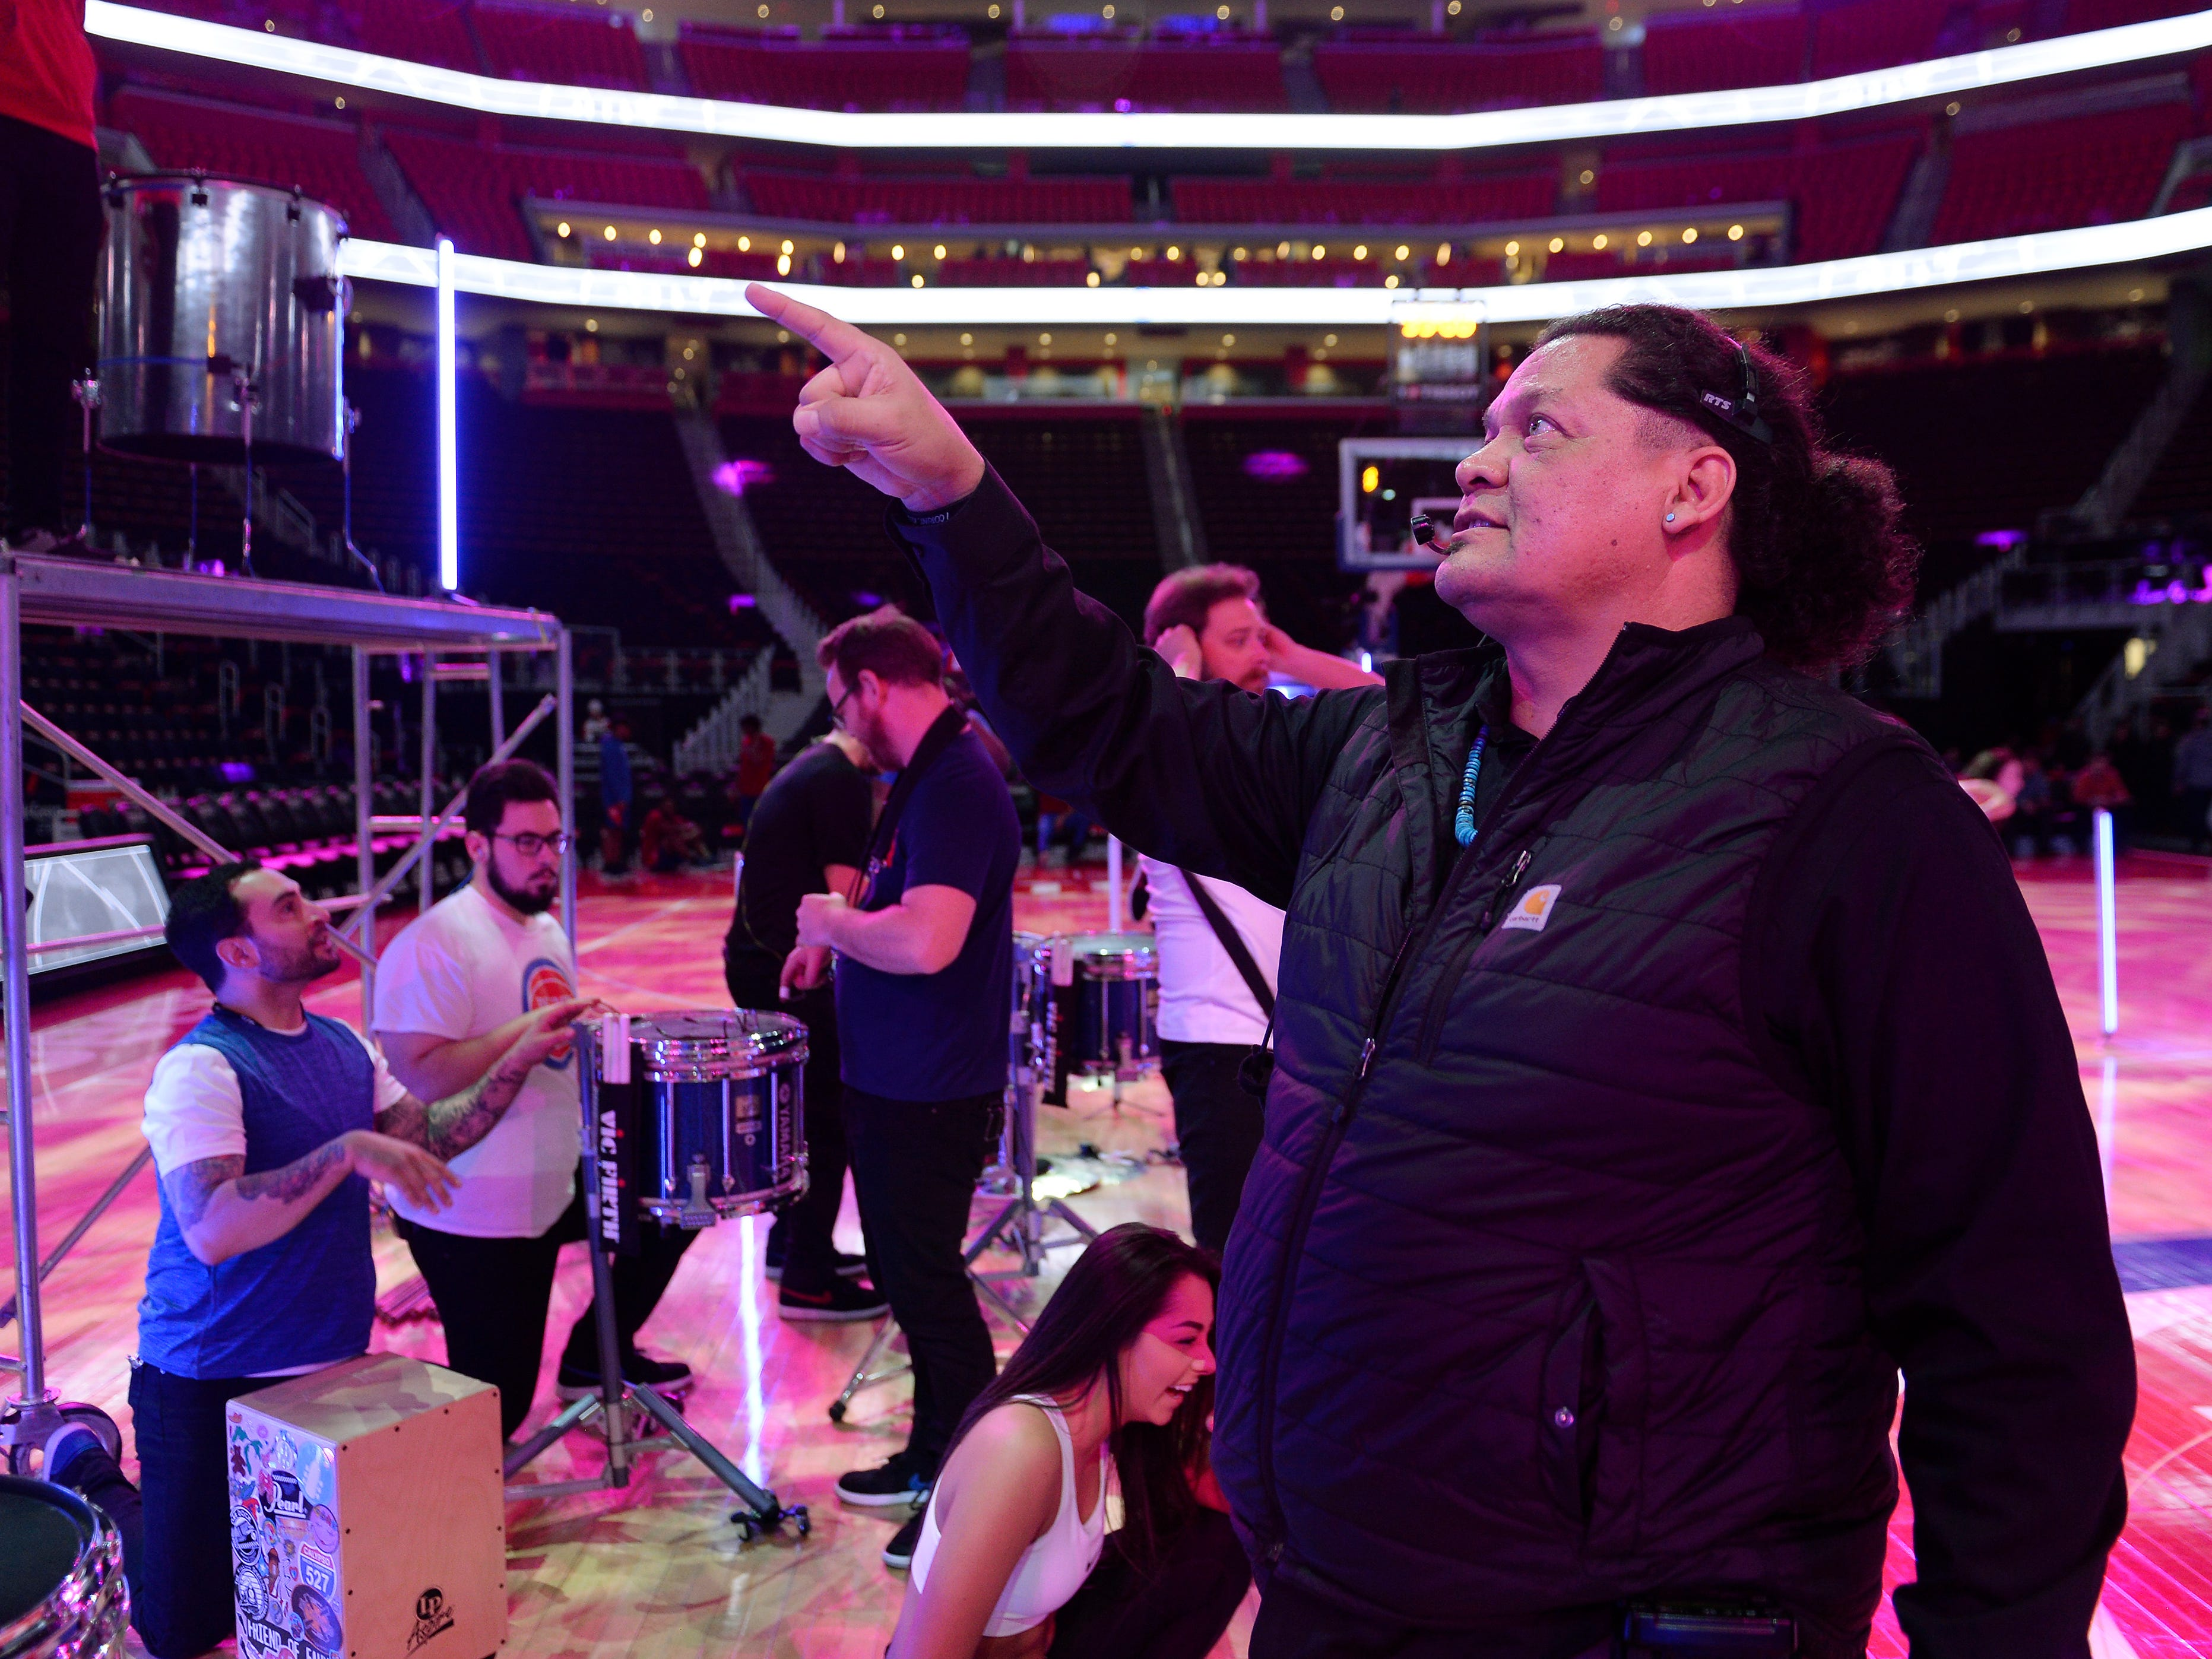 Shawn Martinez, entertainment director for the Detroit Pistons, directs the rehearsal for the halftime entertainment for the game against the Washington Wizards.